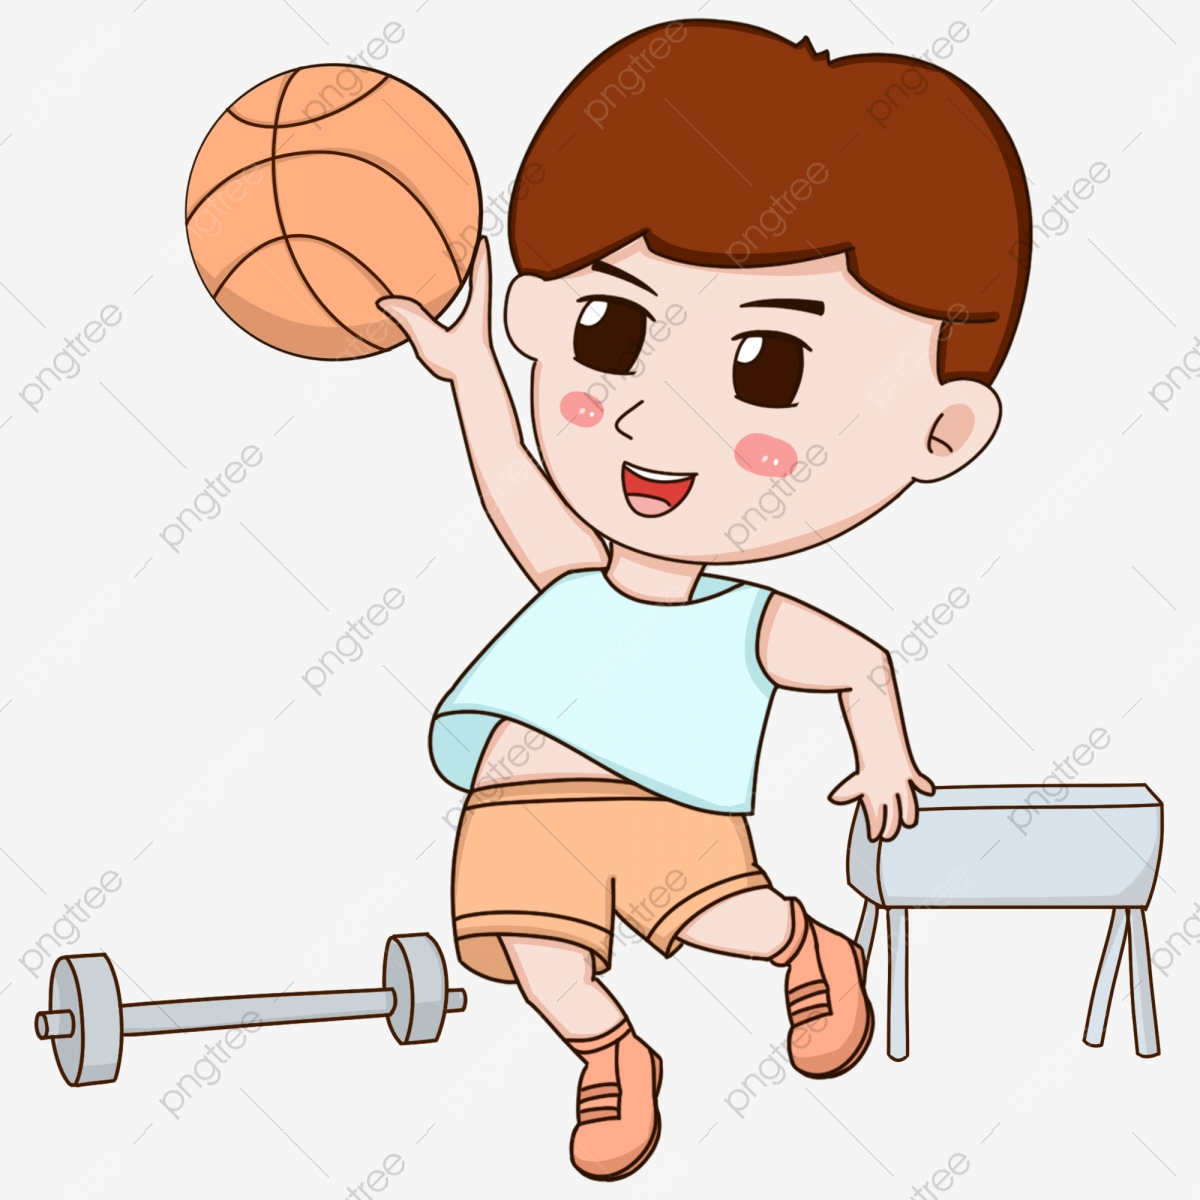 Pe clipart physical work. Education motion boy out